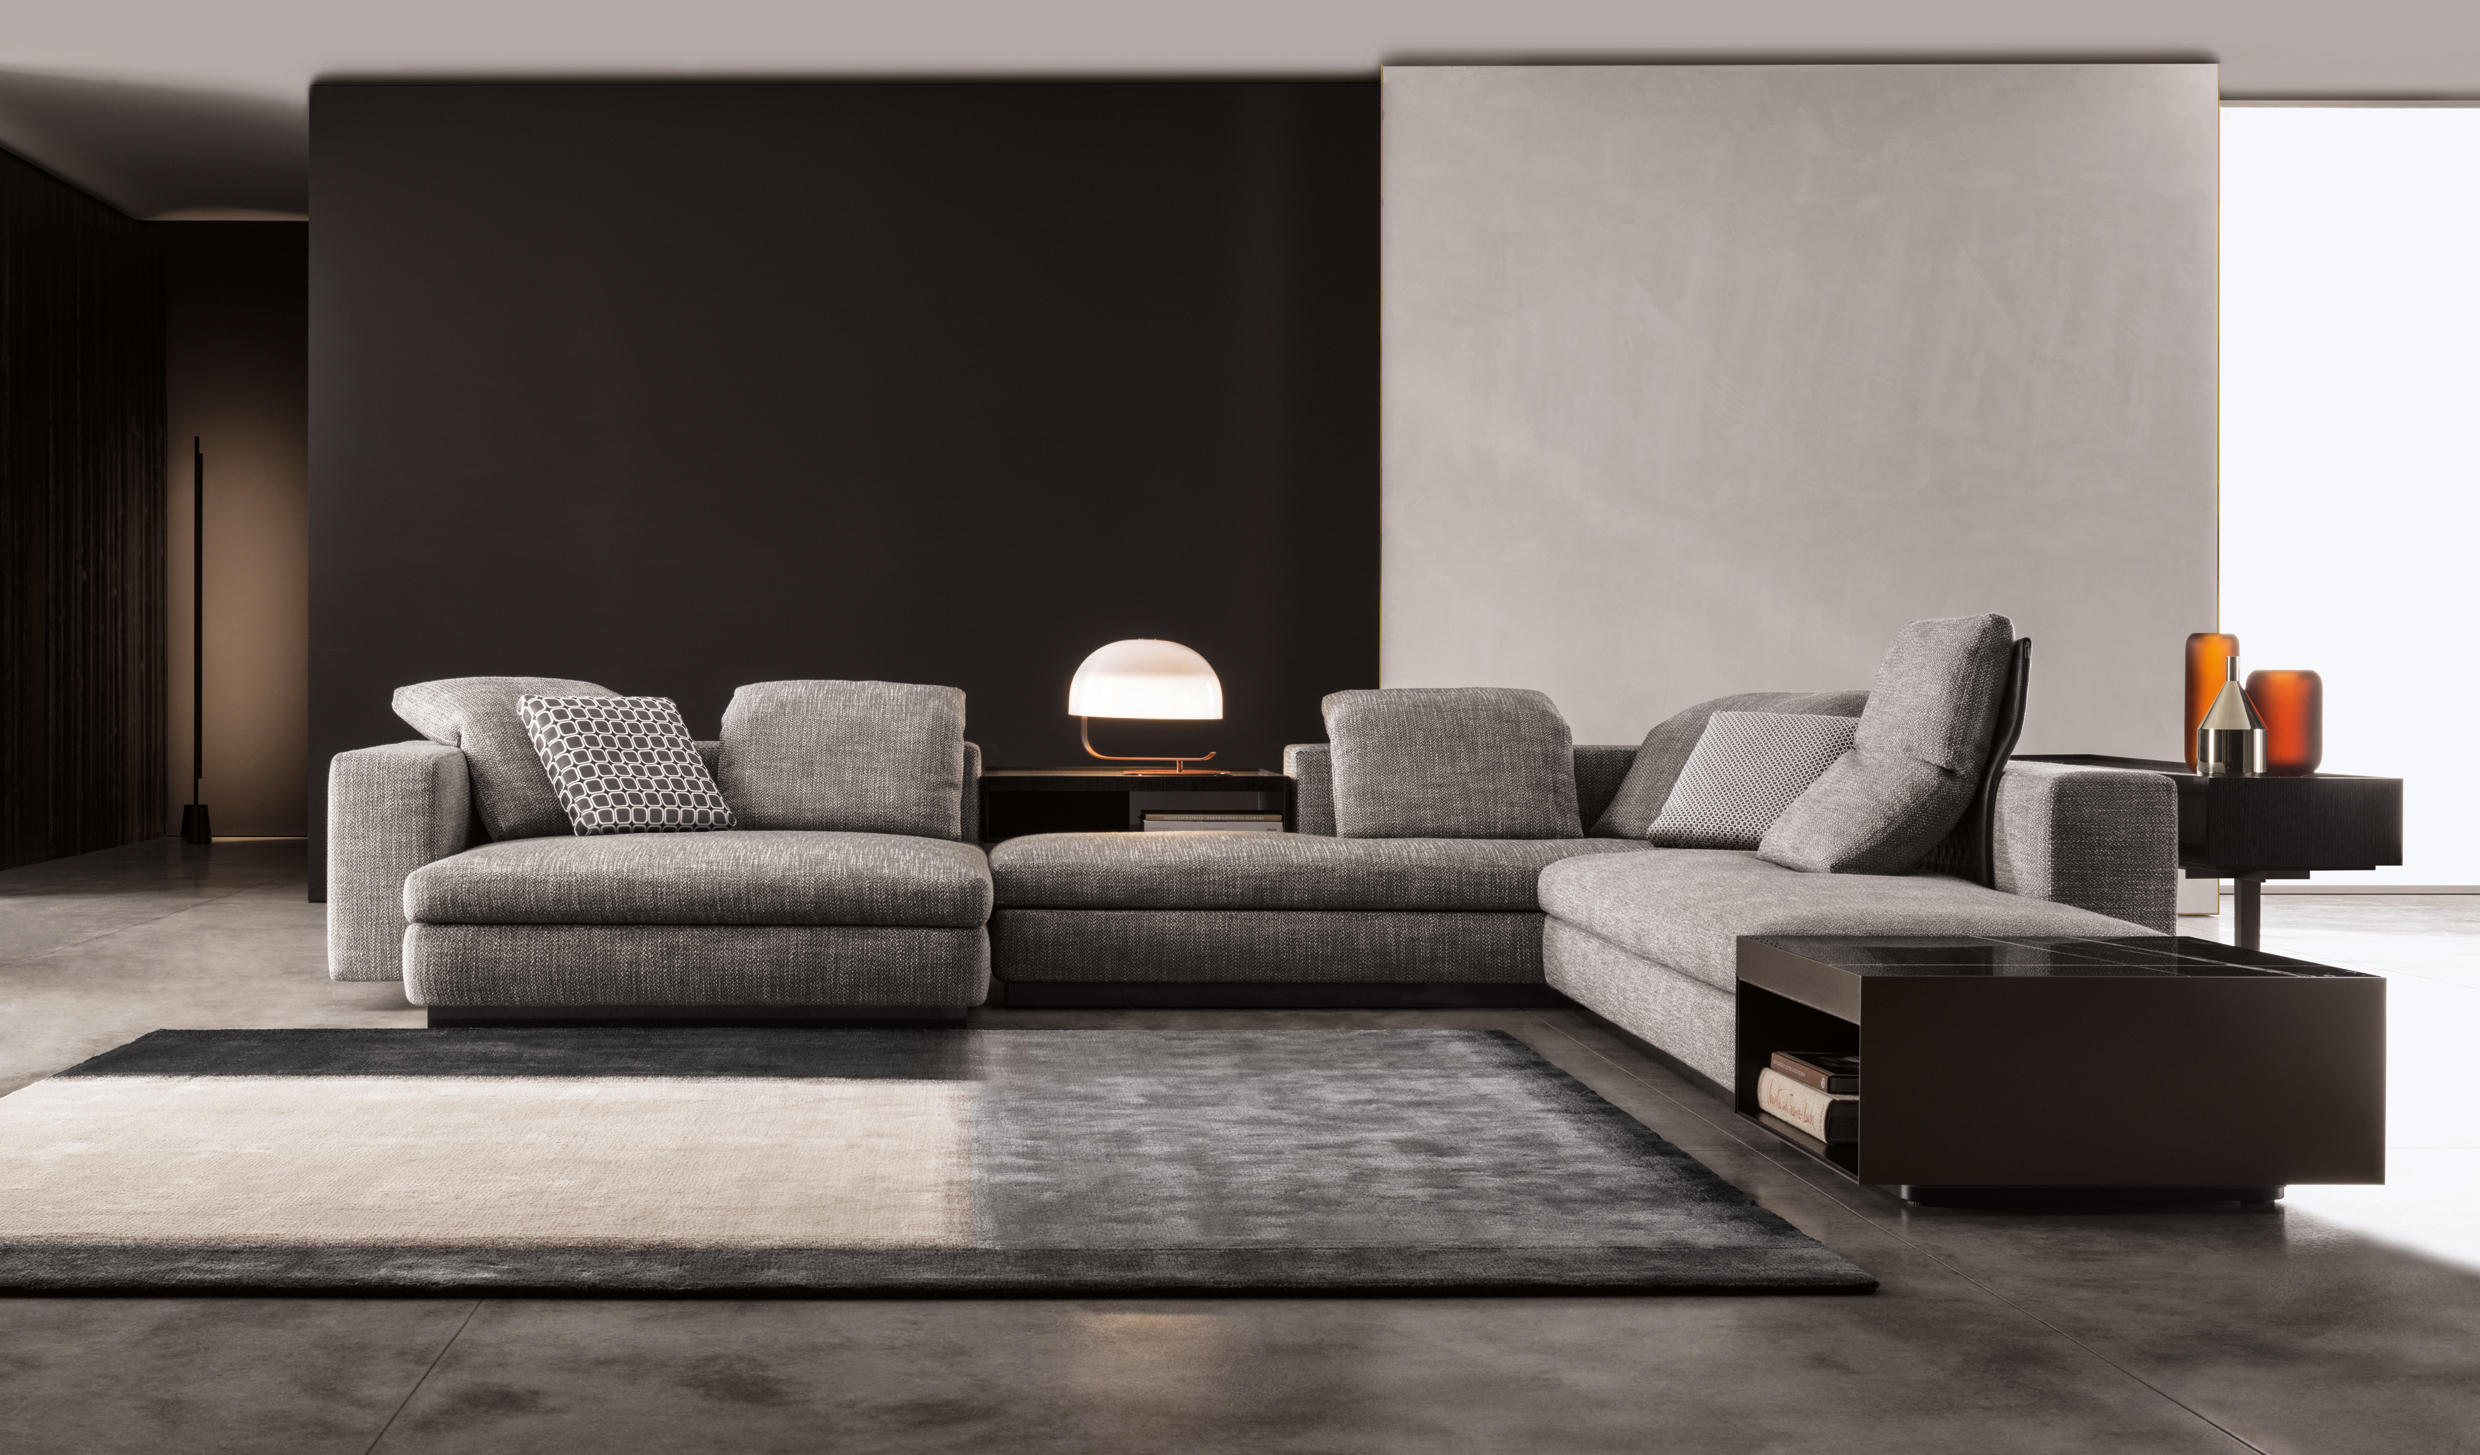 Full Size of Minotti Alexander Sofa Hamilton For Sale Uk Freeman Dimensions Preise Cad Block India Yang Seating System Designermbel Architonic Megapol Mit Holzfüßen Sofa Minotti Sofa